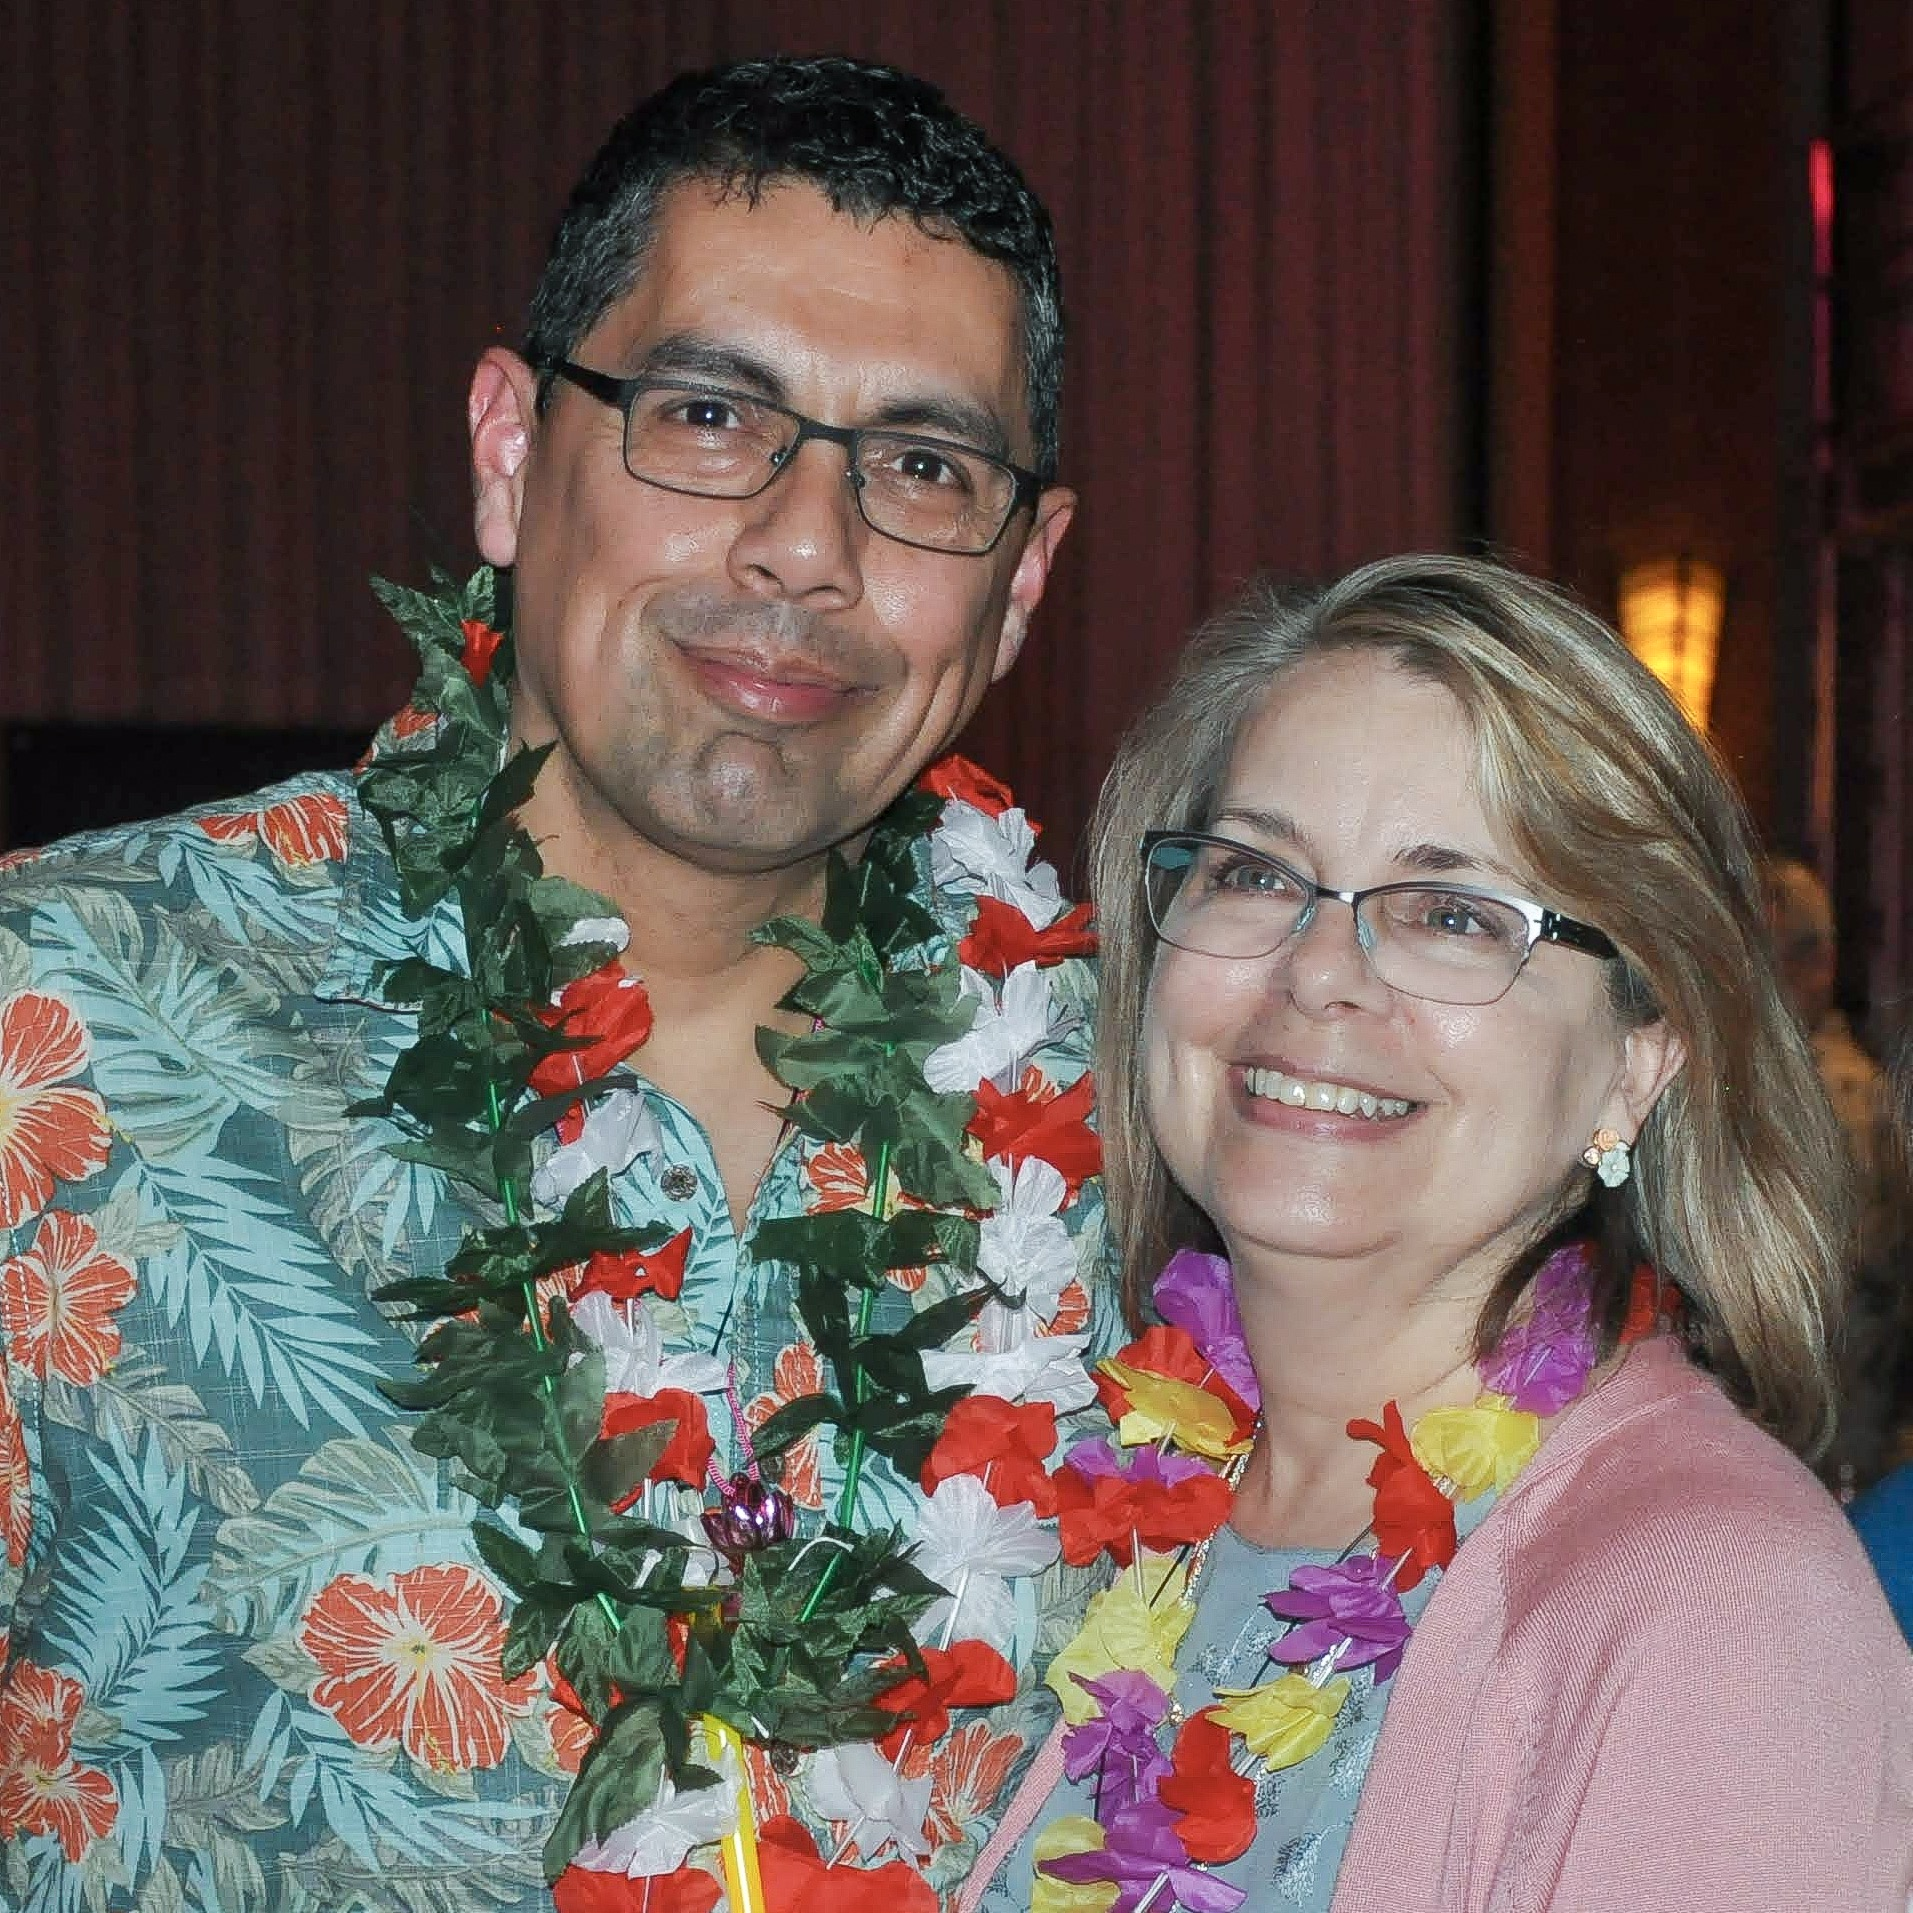 Roy Villalon, Apparel Manager at Fred Meyer Redmond with his wife.